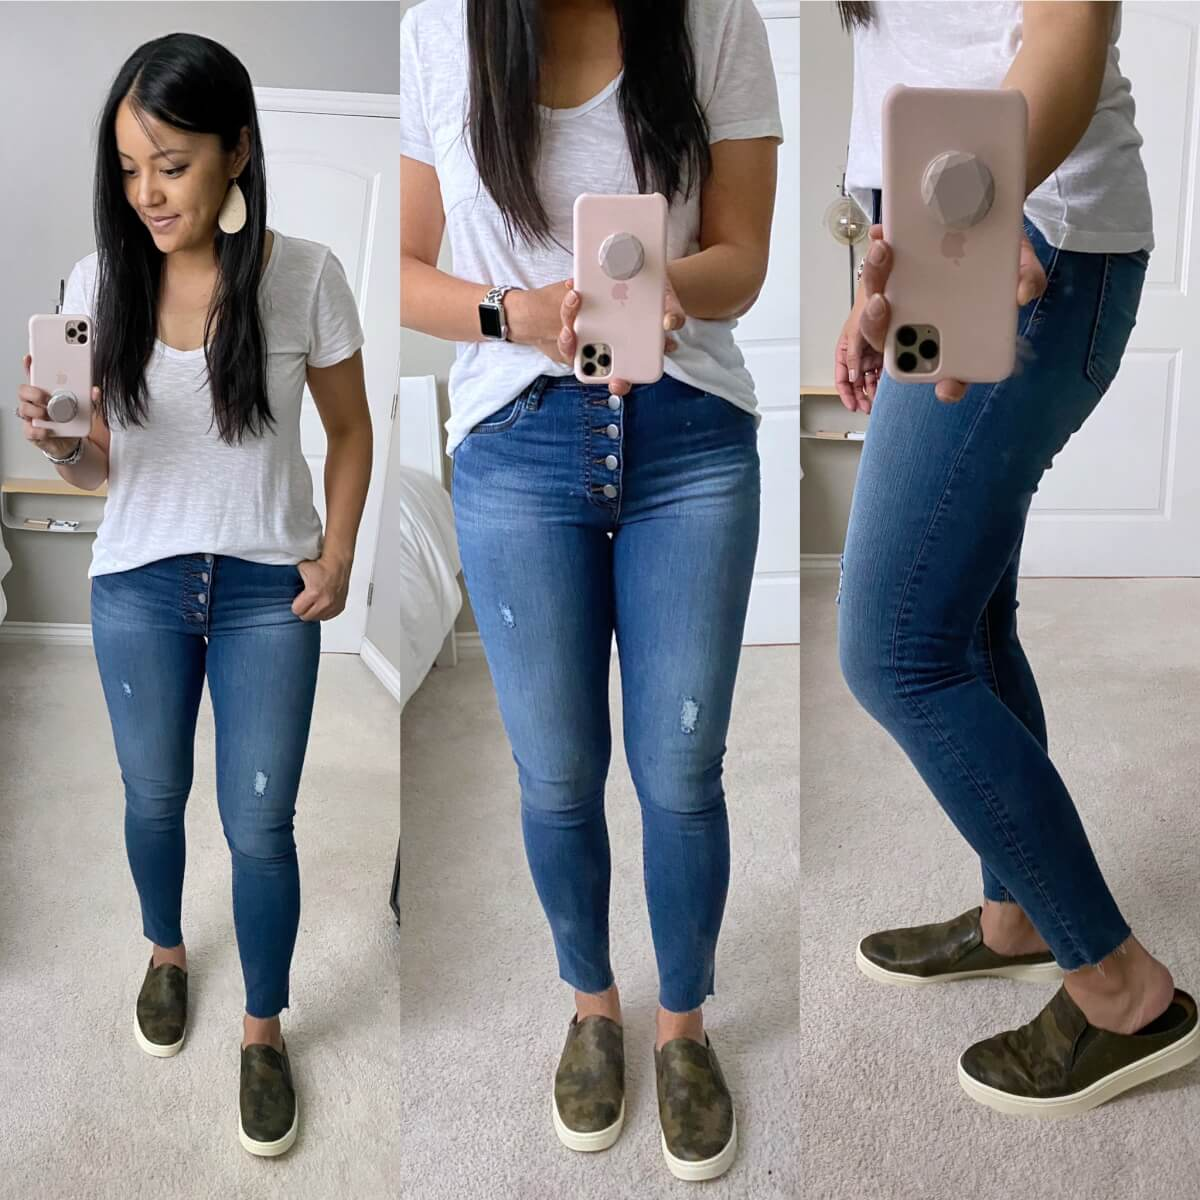 Casual Jeans Outfit: white tee + button-fly skinny jeans + camo slip-on sneakers + gold leather earrings